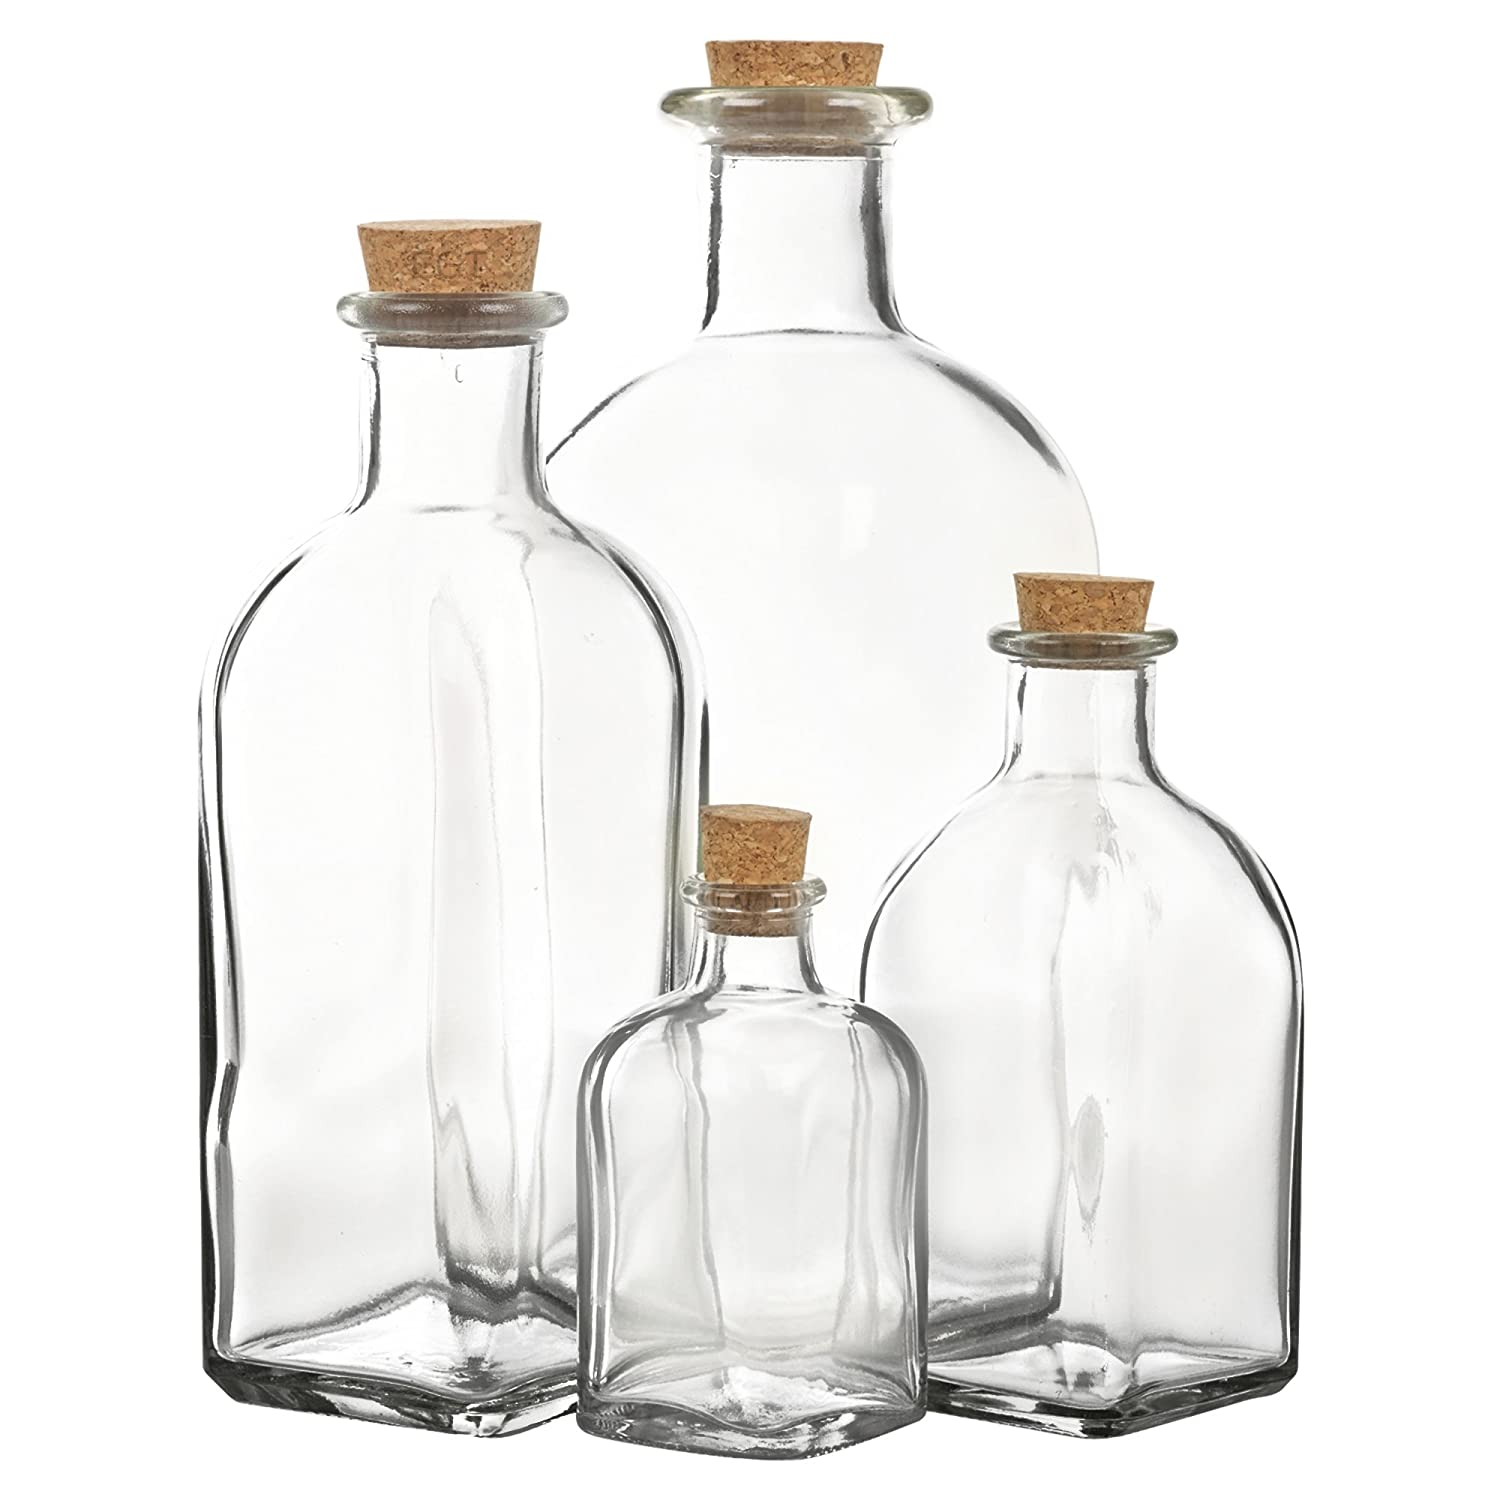 Eg Homewares Glass Storage Bottle Jars Vials With Cork Stopper Lid